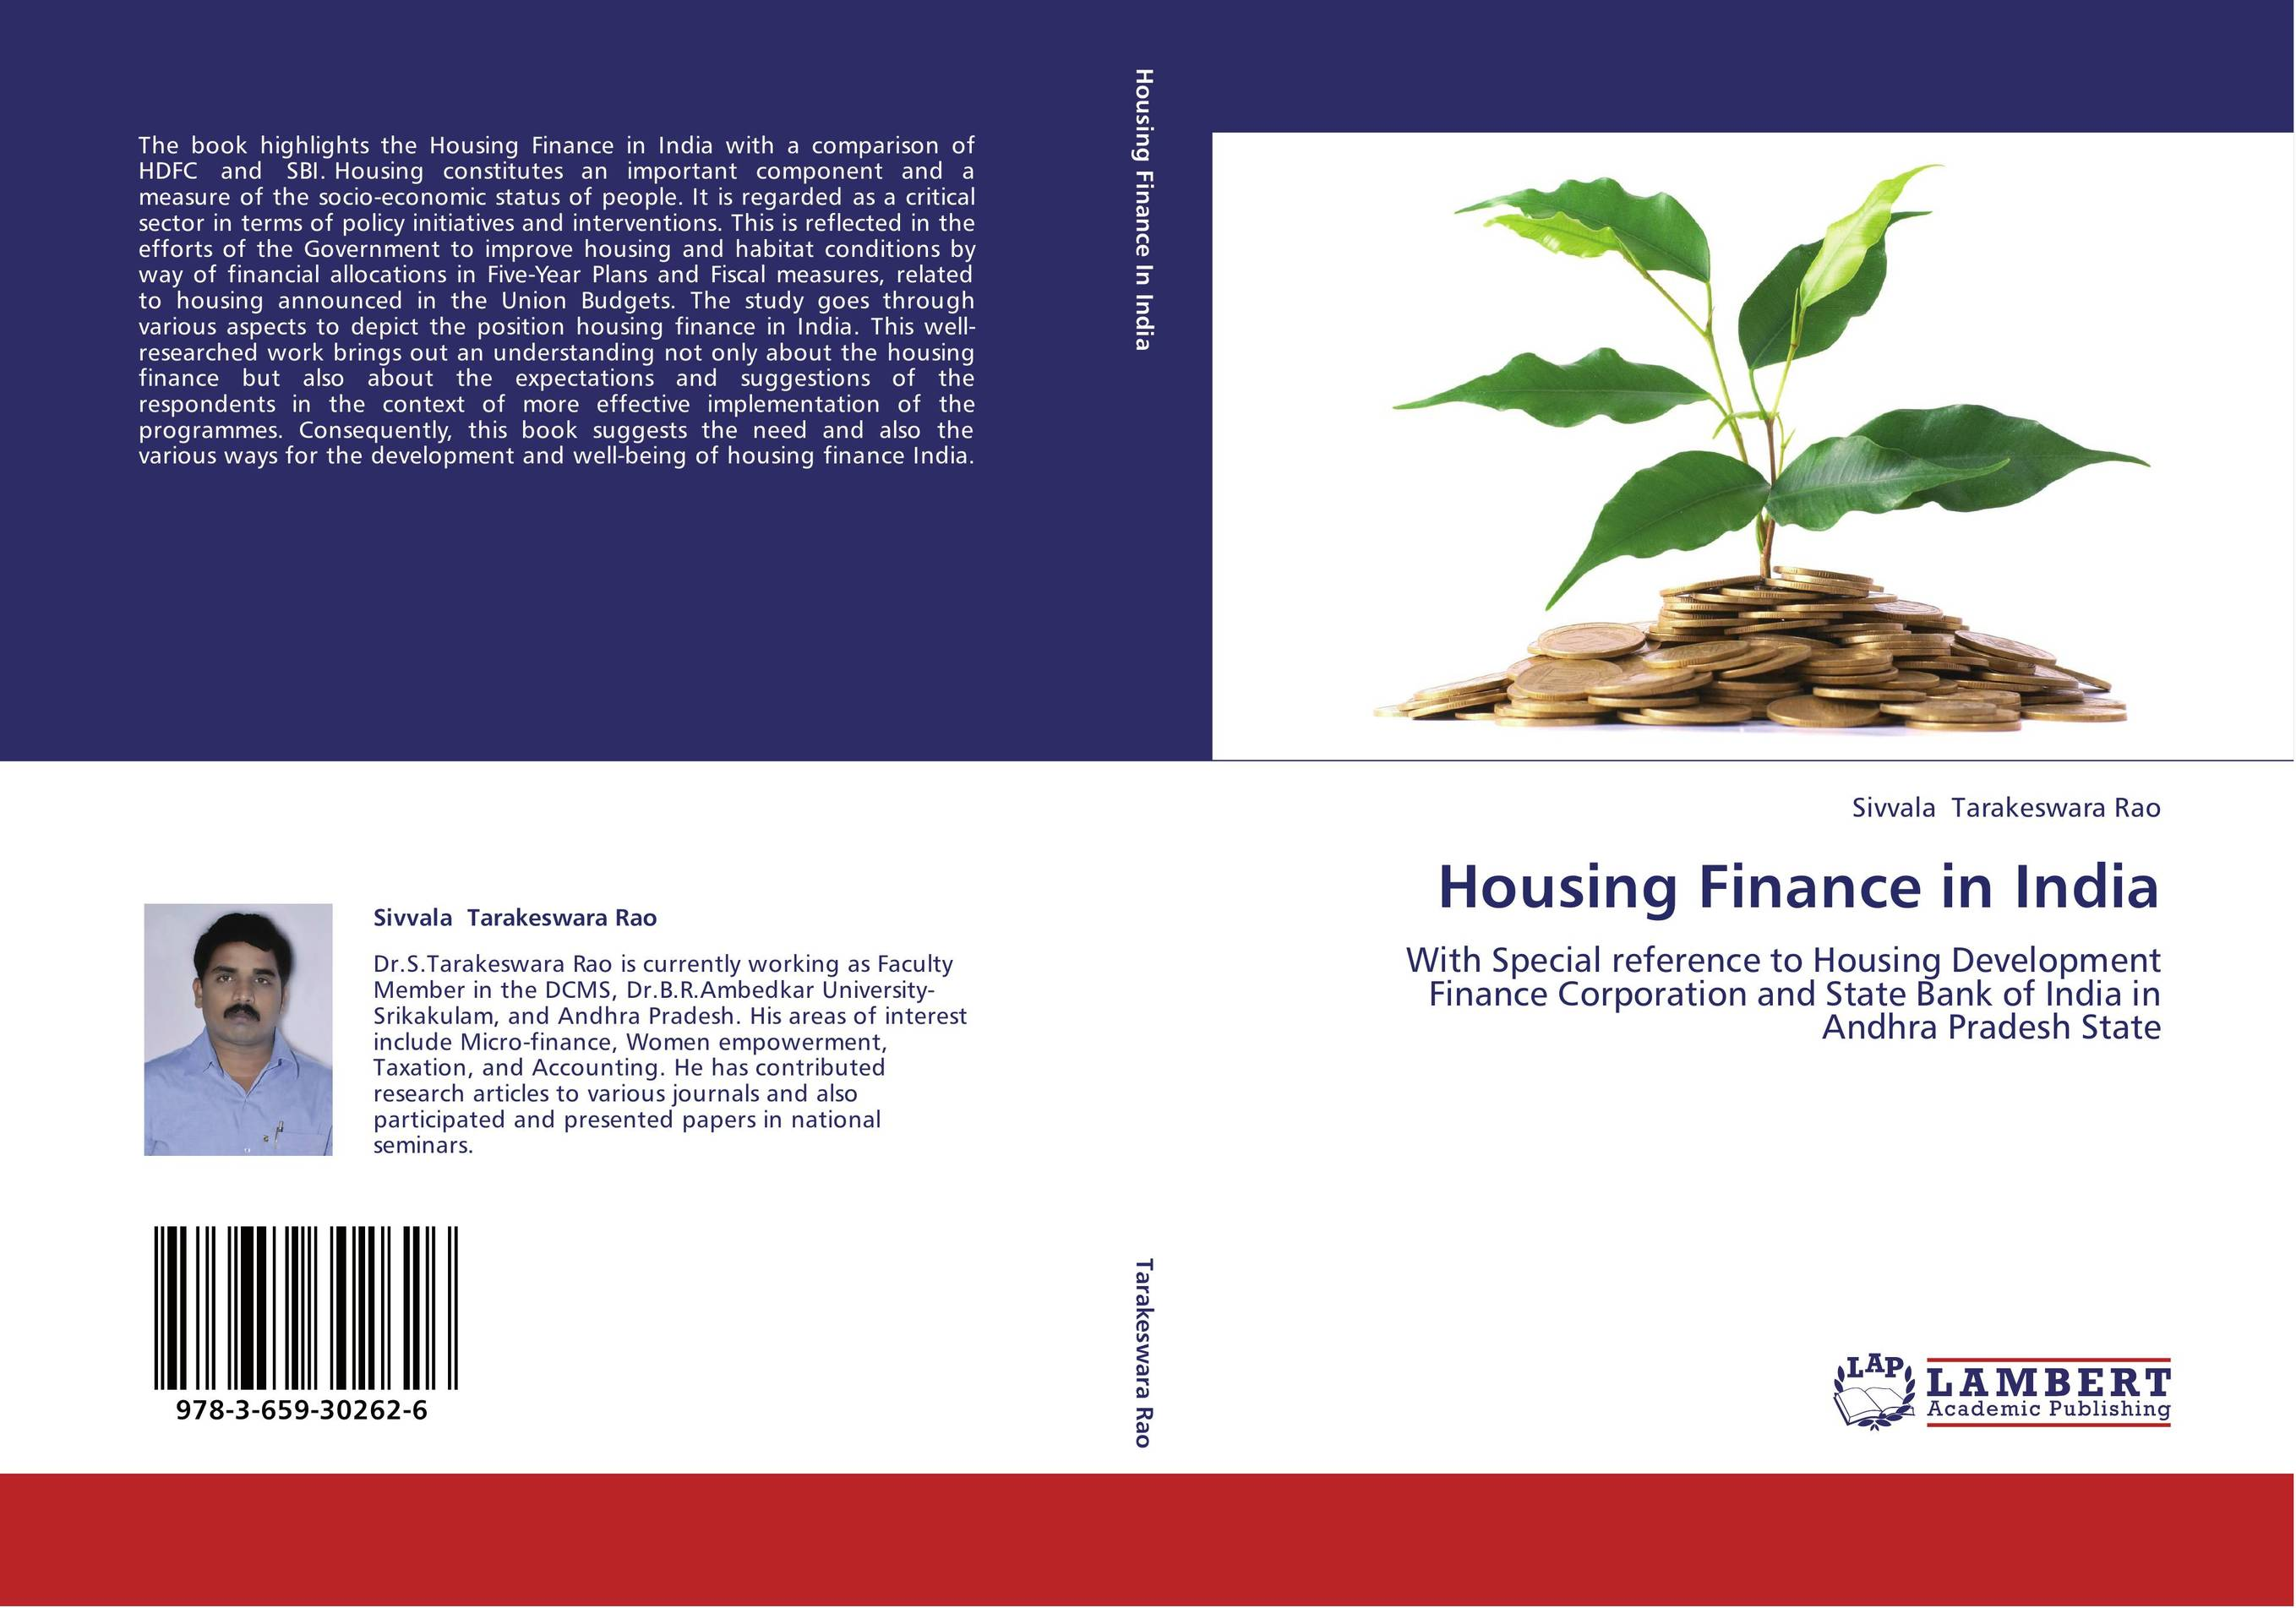 research papers on housing finance in india Decline of rental housing in india stringent rent controls since landlords do not get a reasonable return on their property, they have no incentive to invest in the.